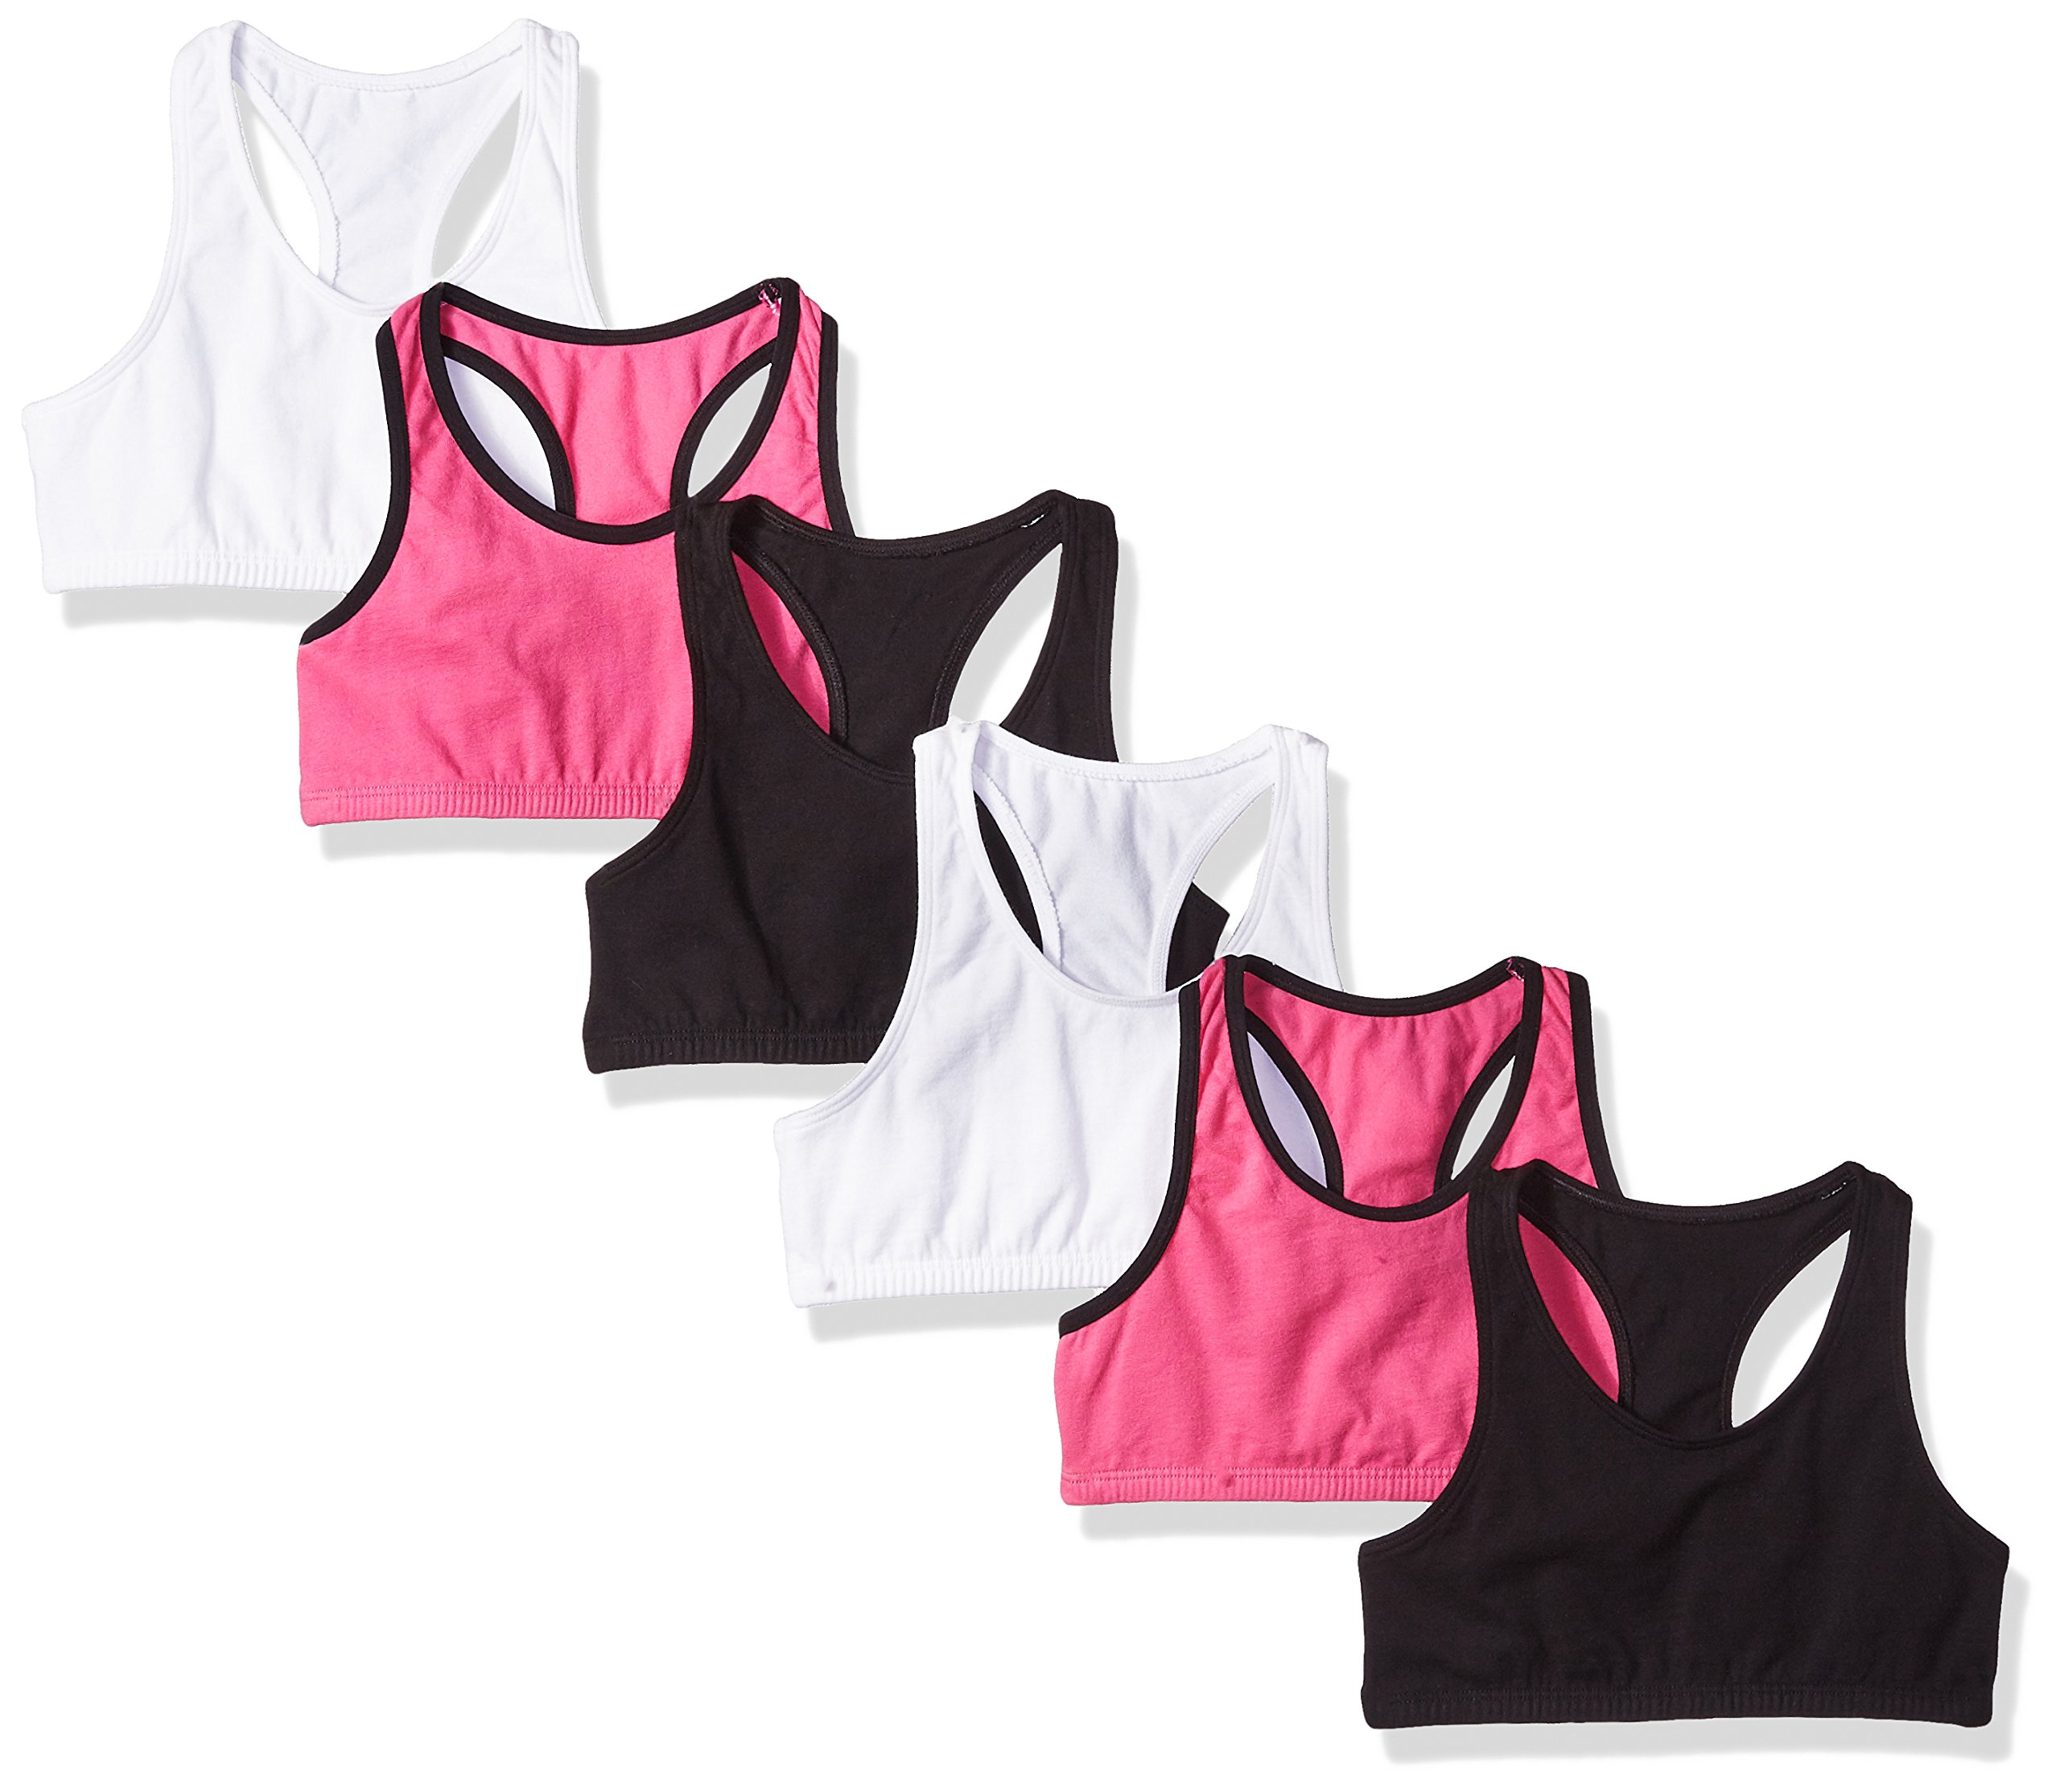 Fruit of the Loom Big Girls' Cotton Built-up Sport Bra, Passion Fruit with Black/White/Black-6 Pack, 32